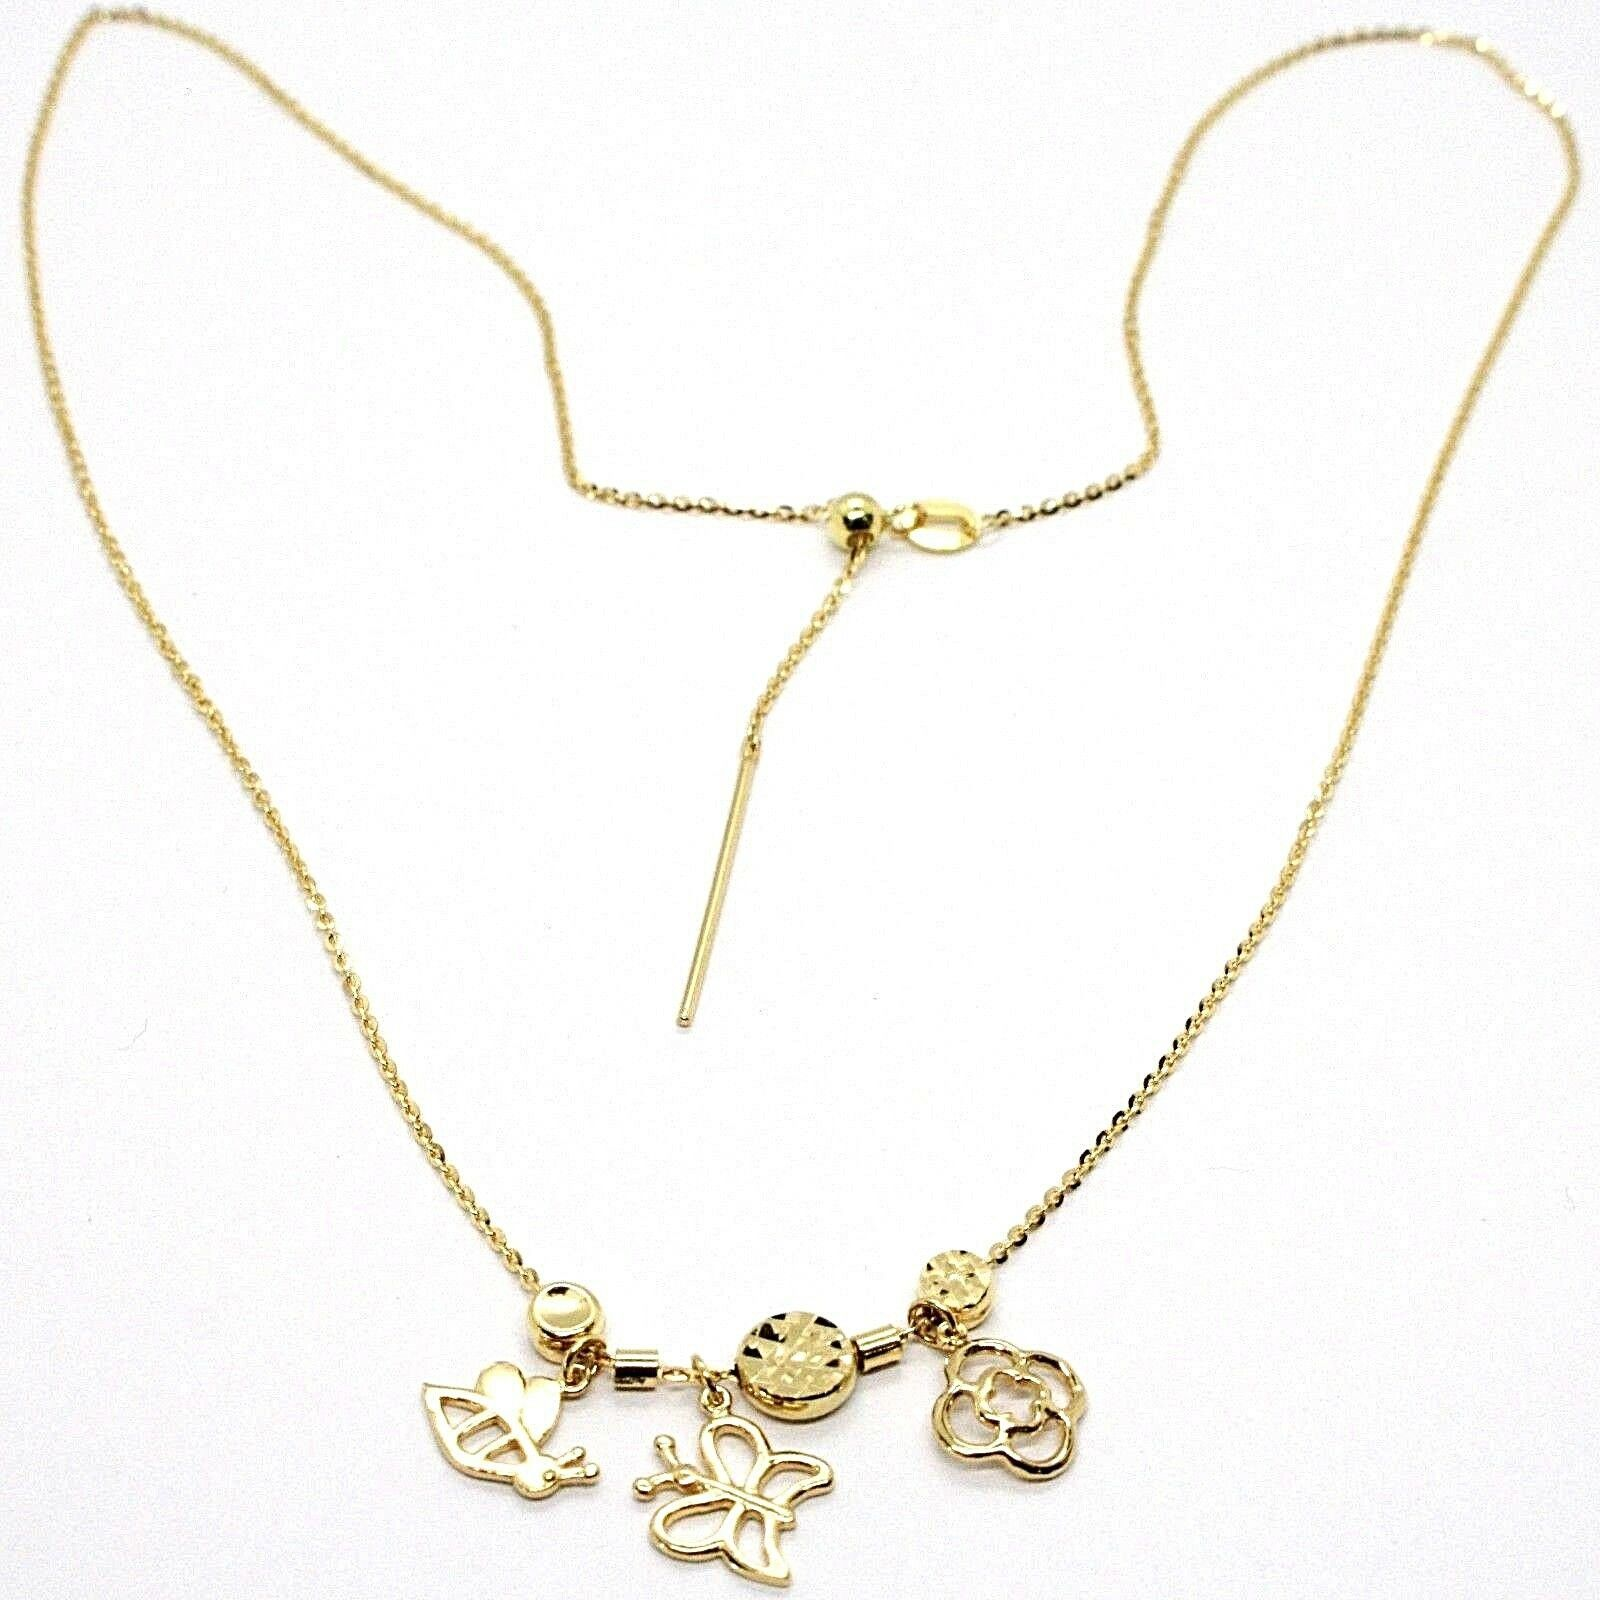 18K YELLOW GOLD NECKLACE, FLOWER, DAISY, BUTTERFLY, BEE PENDANT, MADE IN ITALY